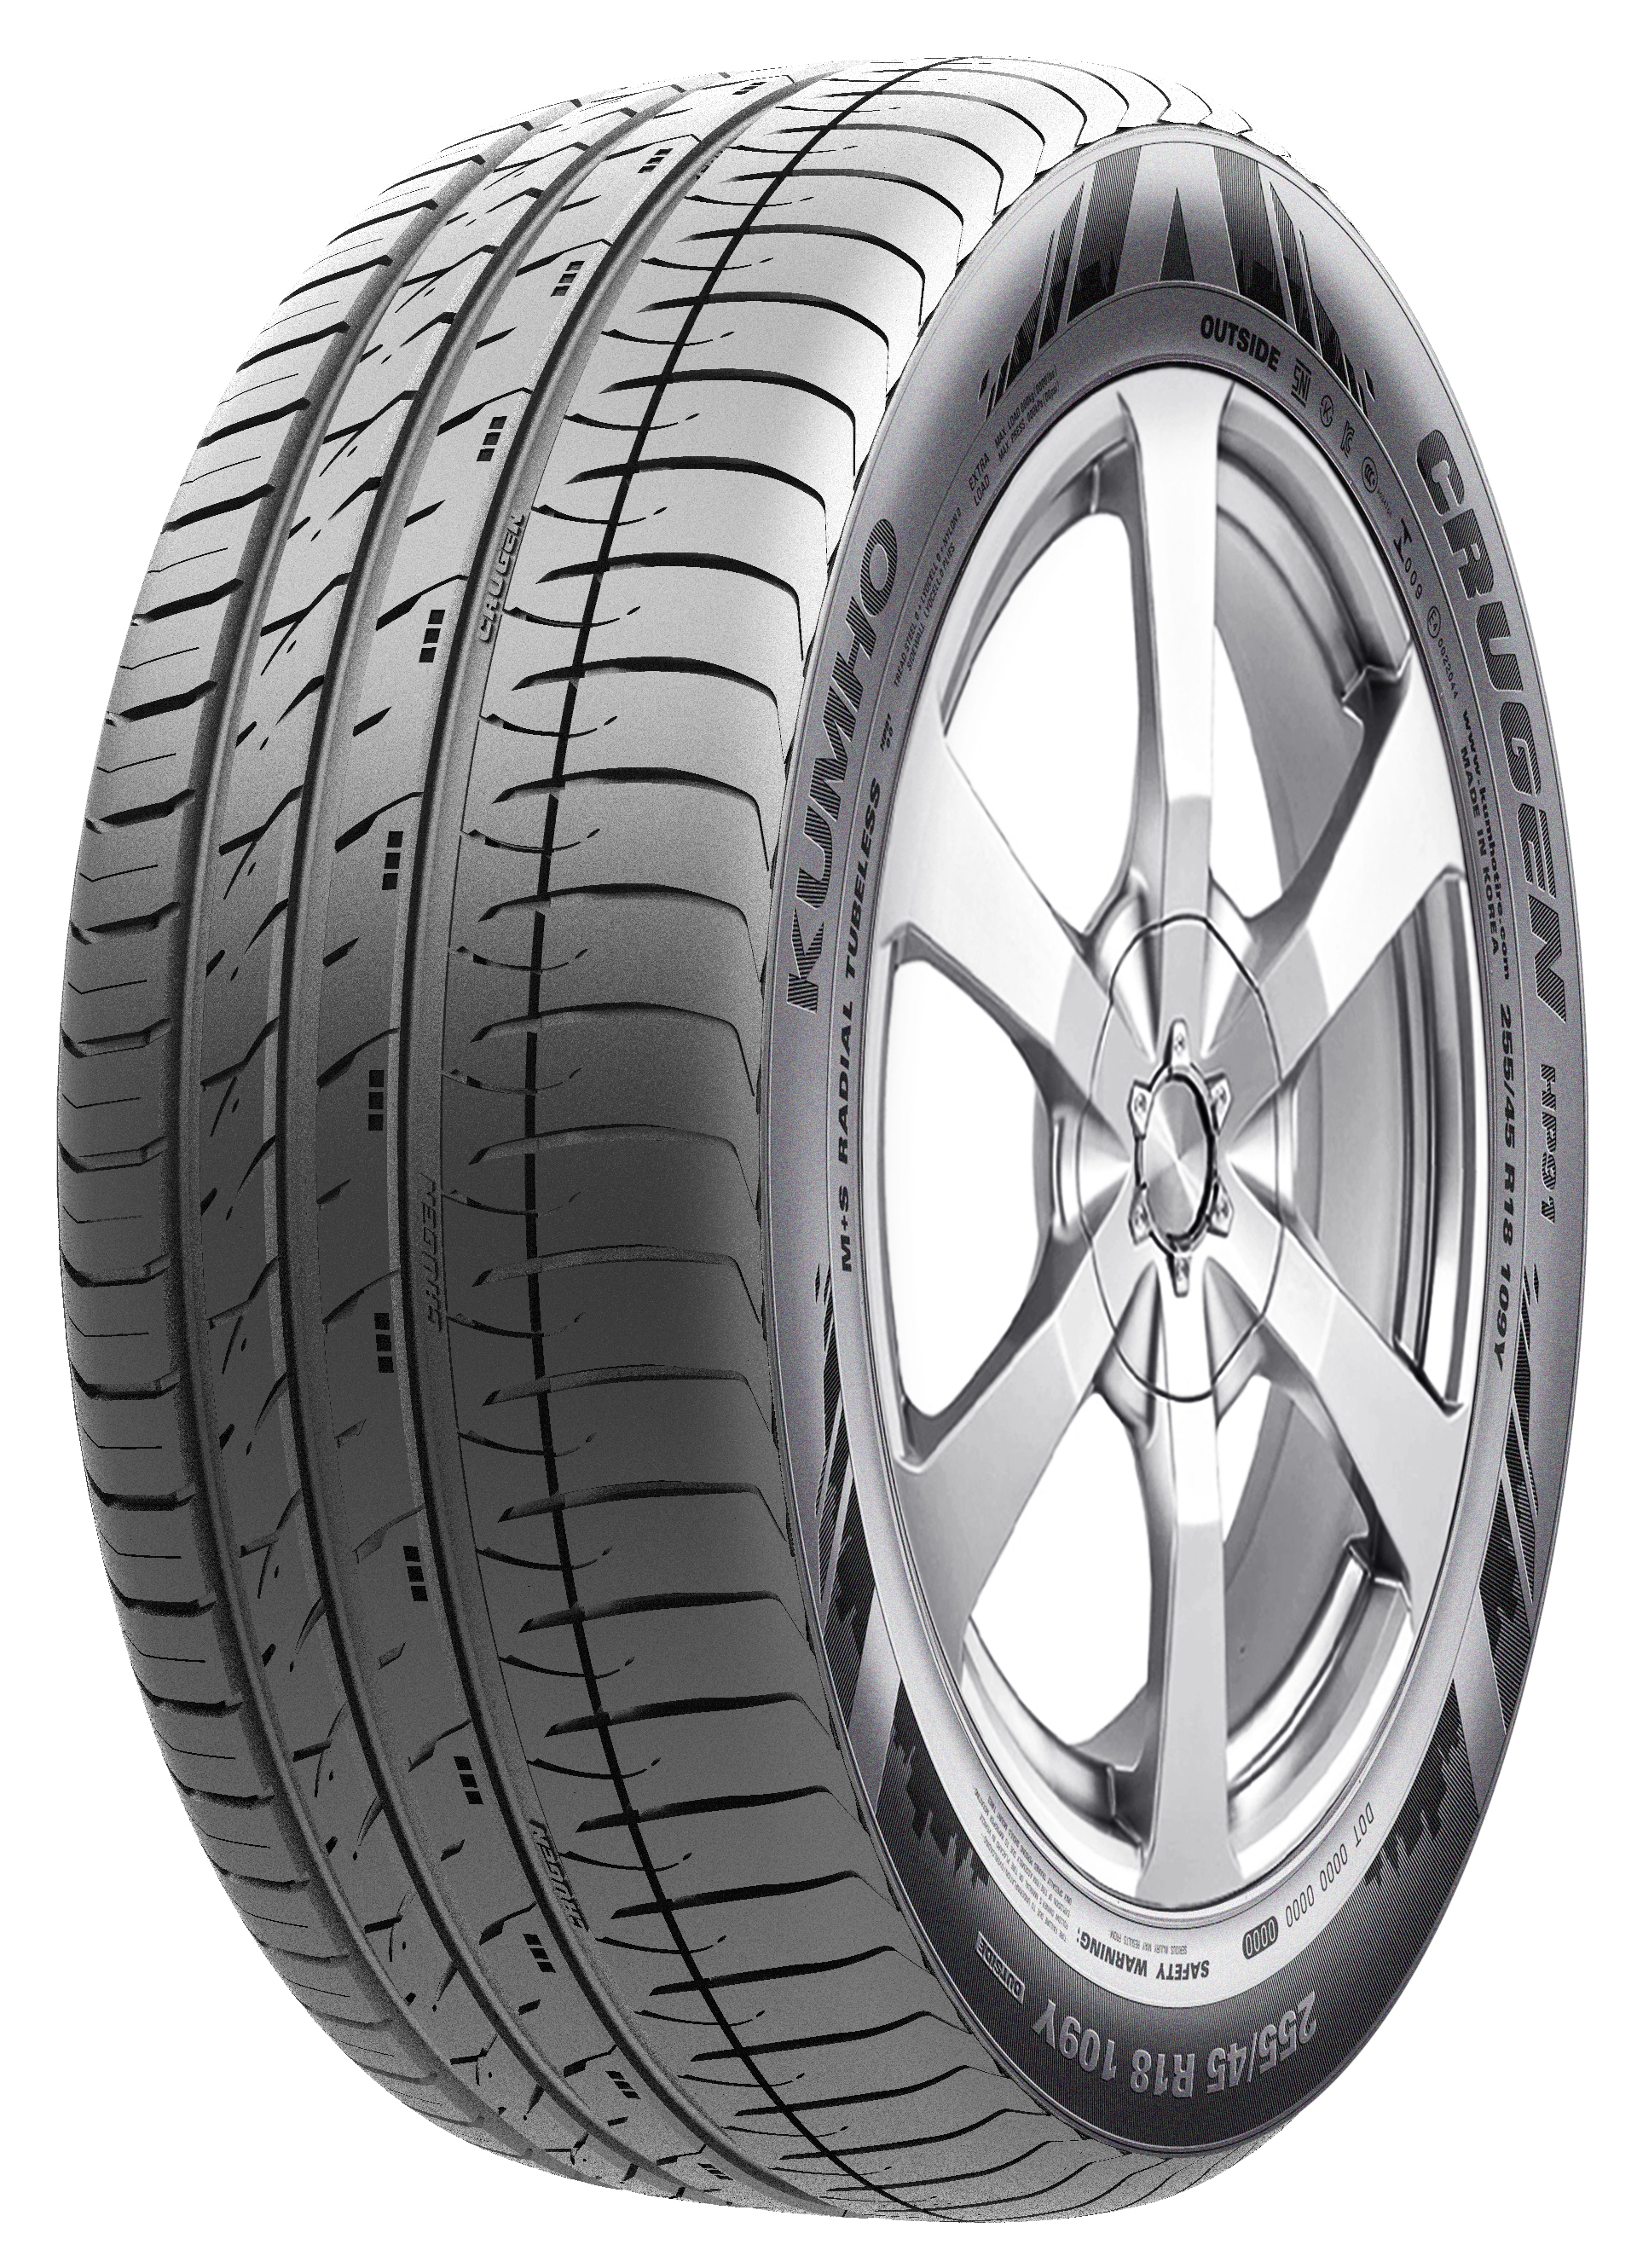 315/35R20 Y HP91 Crugen XL Kumho SI: Y=300 km/h LI: 110=1060kg nyári, off road gumiabroncs